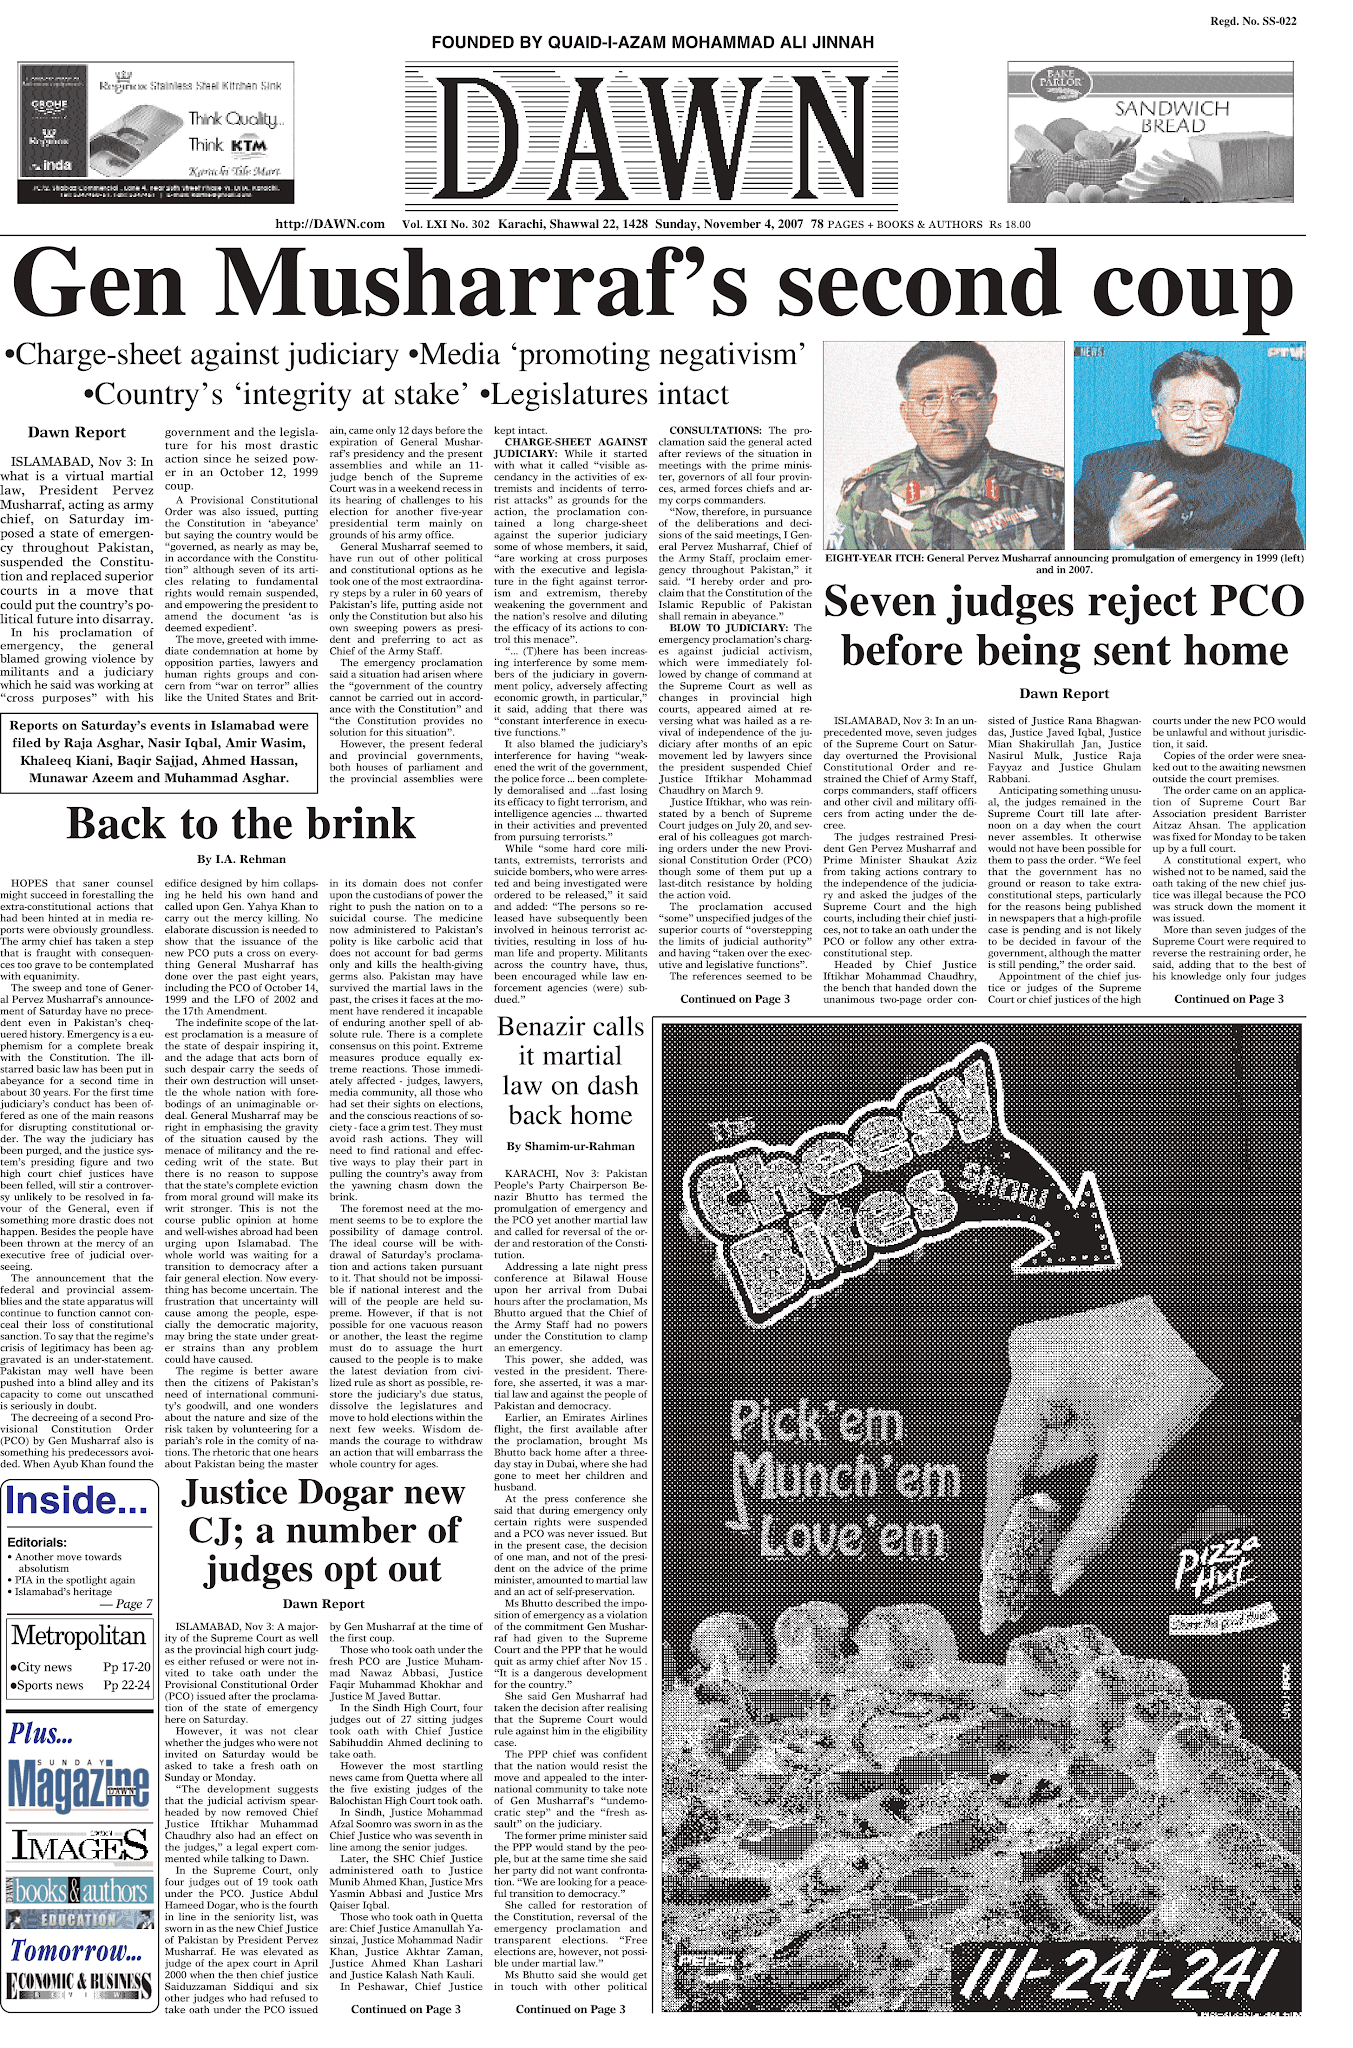 Dawn's Front Page on Nov 4, 2007.